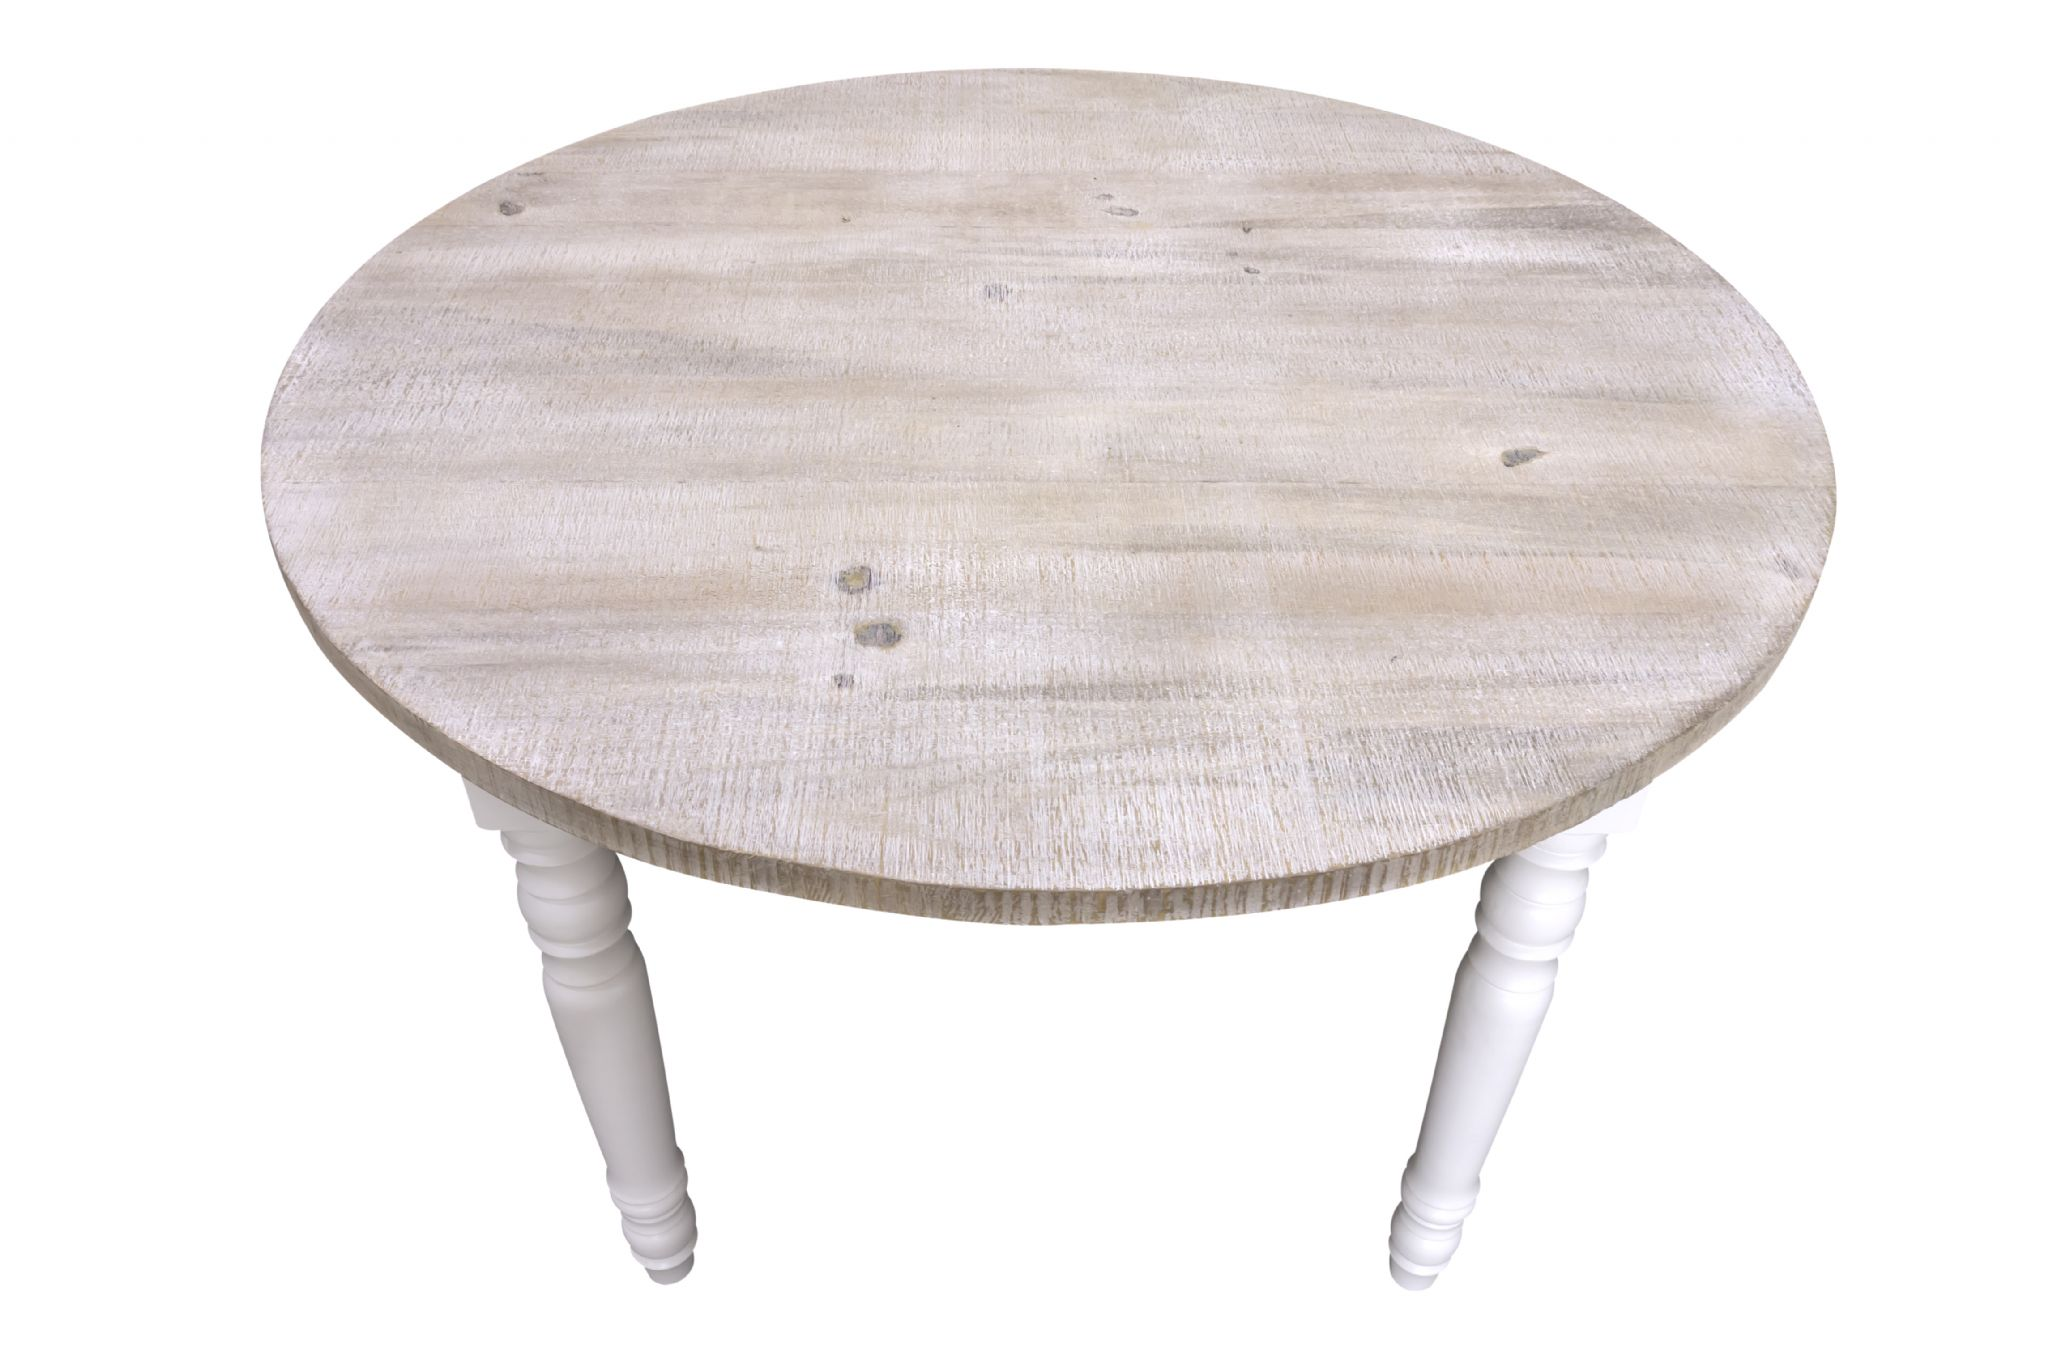 painted furniture shabby chic style dining shabby chic round kitchen table bedroomlicious shabby chic bedrooms country cottage bedroom